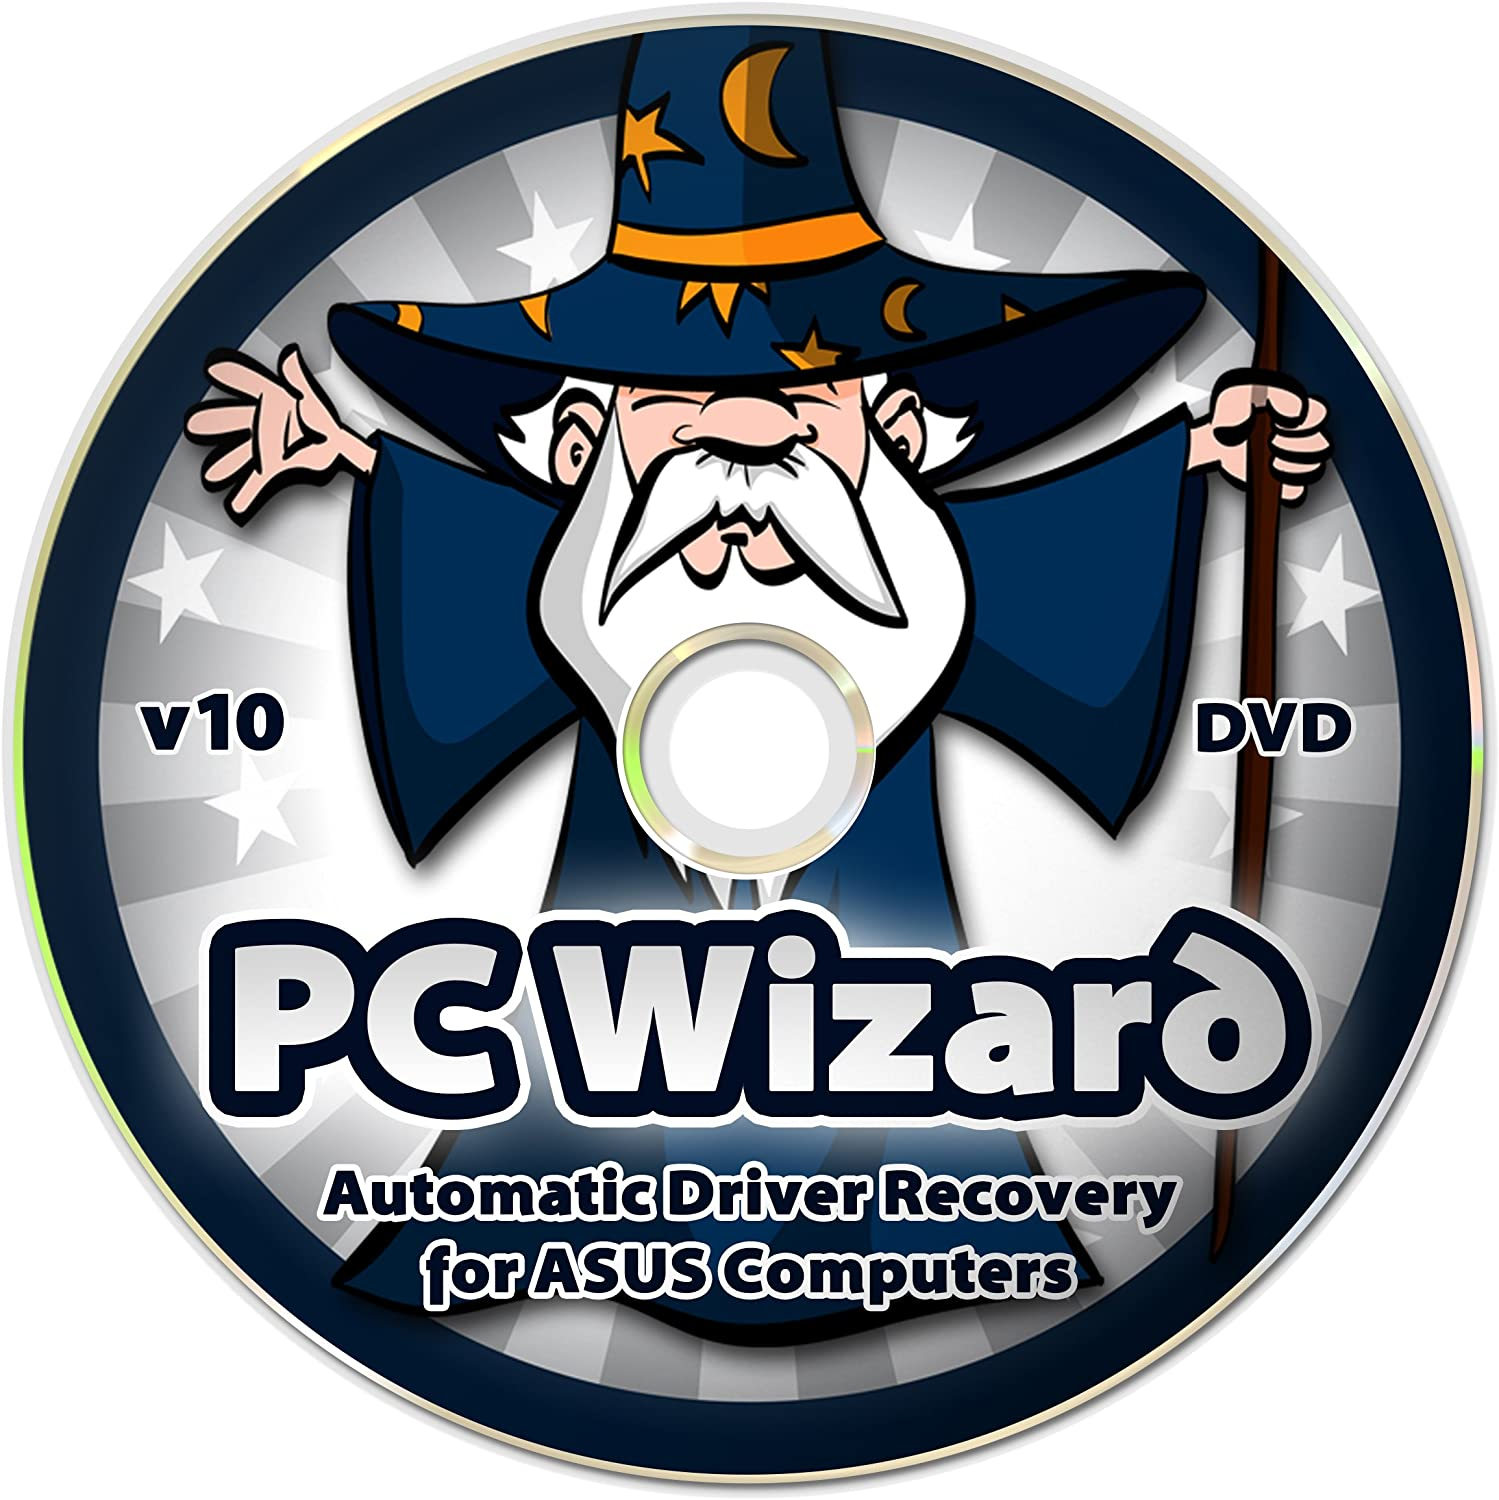 PC Wizard - Automatic Drivers Recovery Restore Update for ASUS Computers (Desktops and Laptops) on DVD Disc - Supports Windows 10, 8.1, 7, Vista, XP (32-bit & 64-bit) - Supports All Hardware Devices